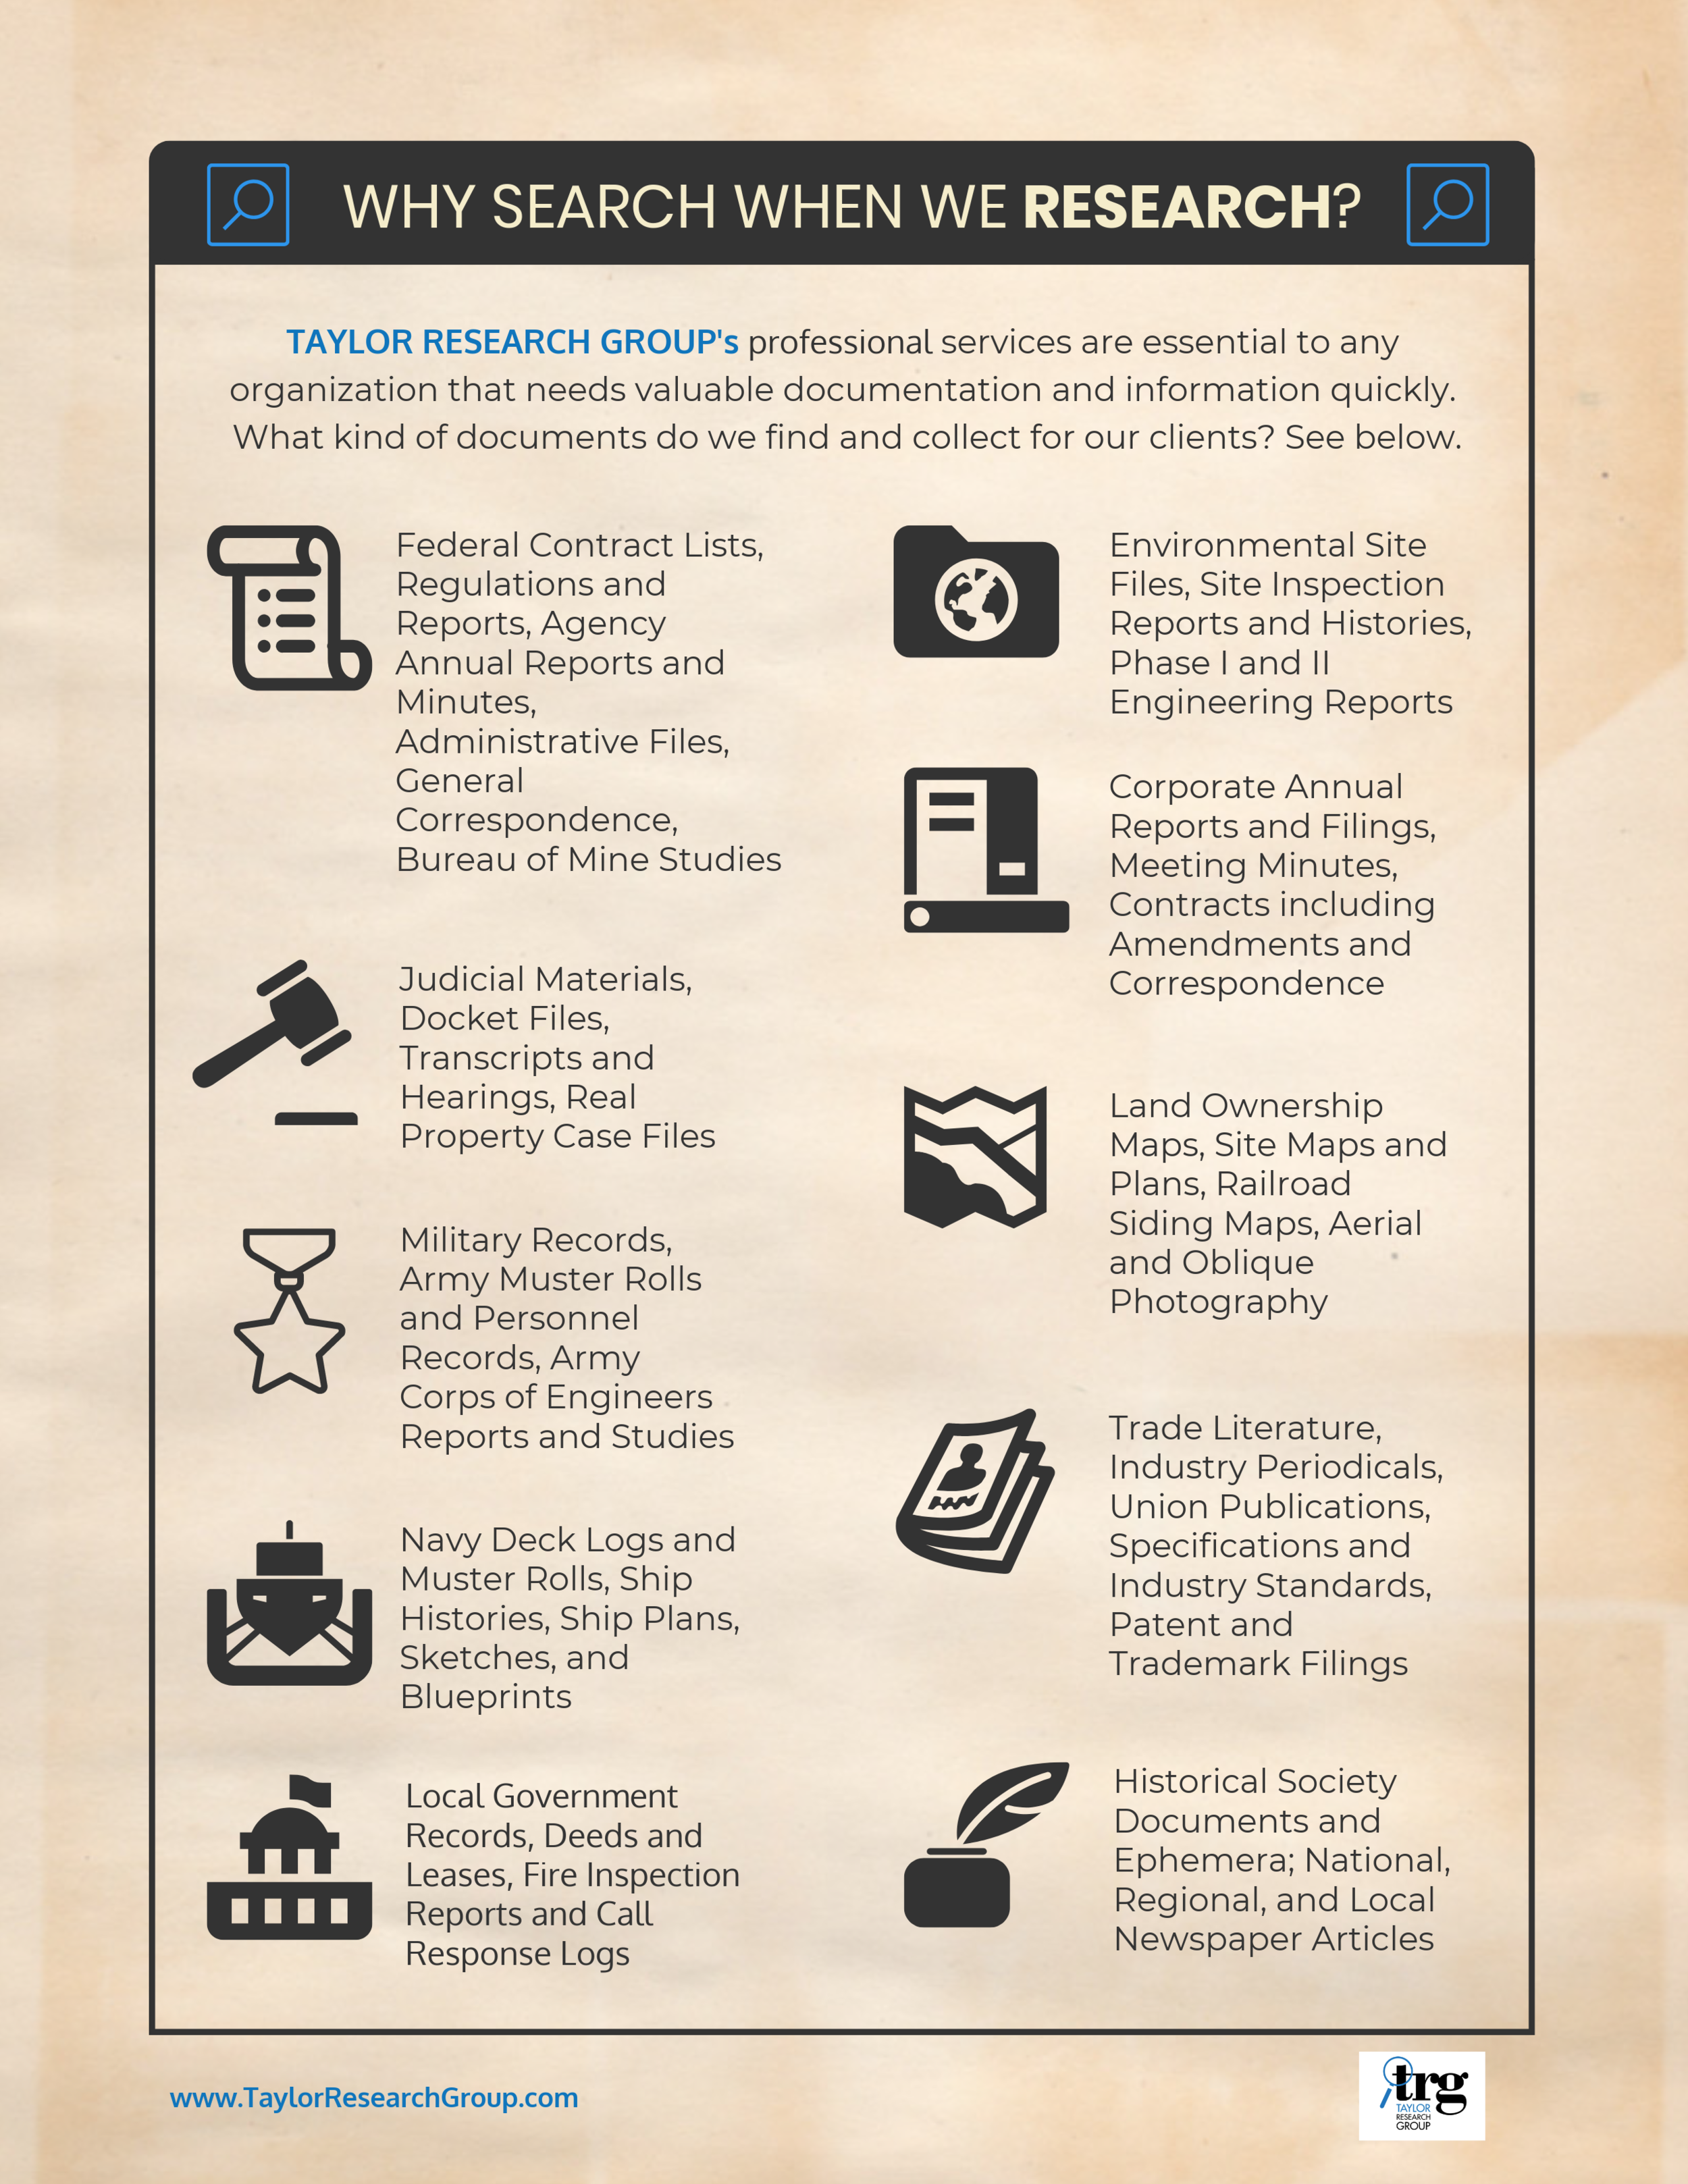 This infographic lists many of the documents we are routinely asked to locate and collect by our clients.